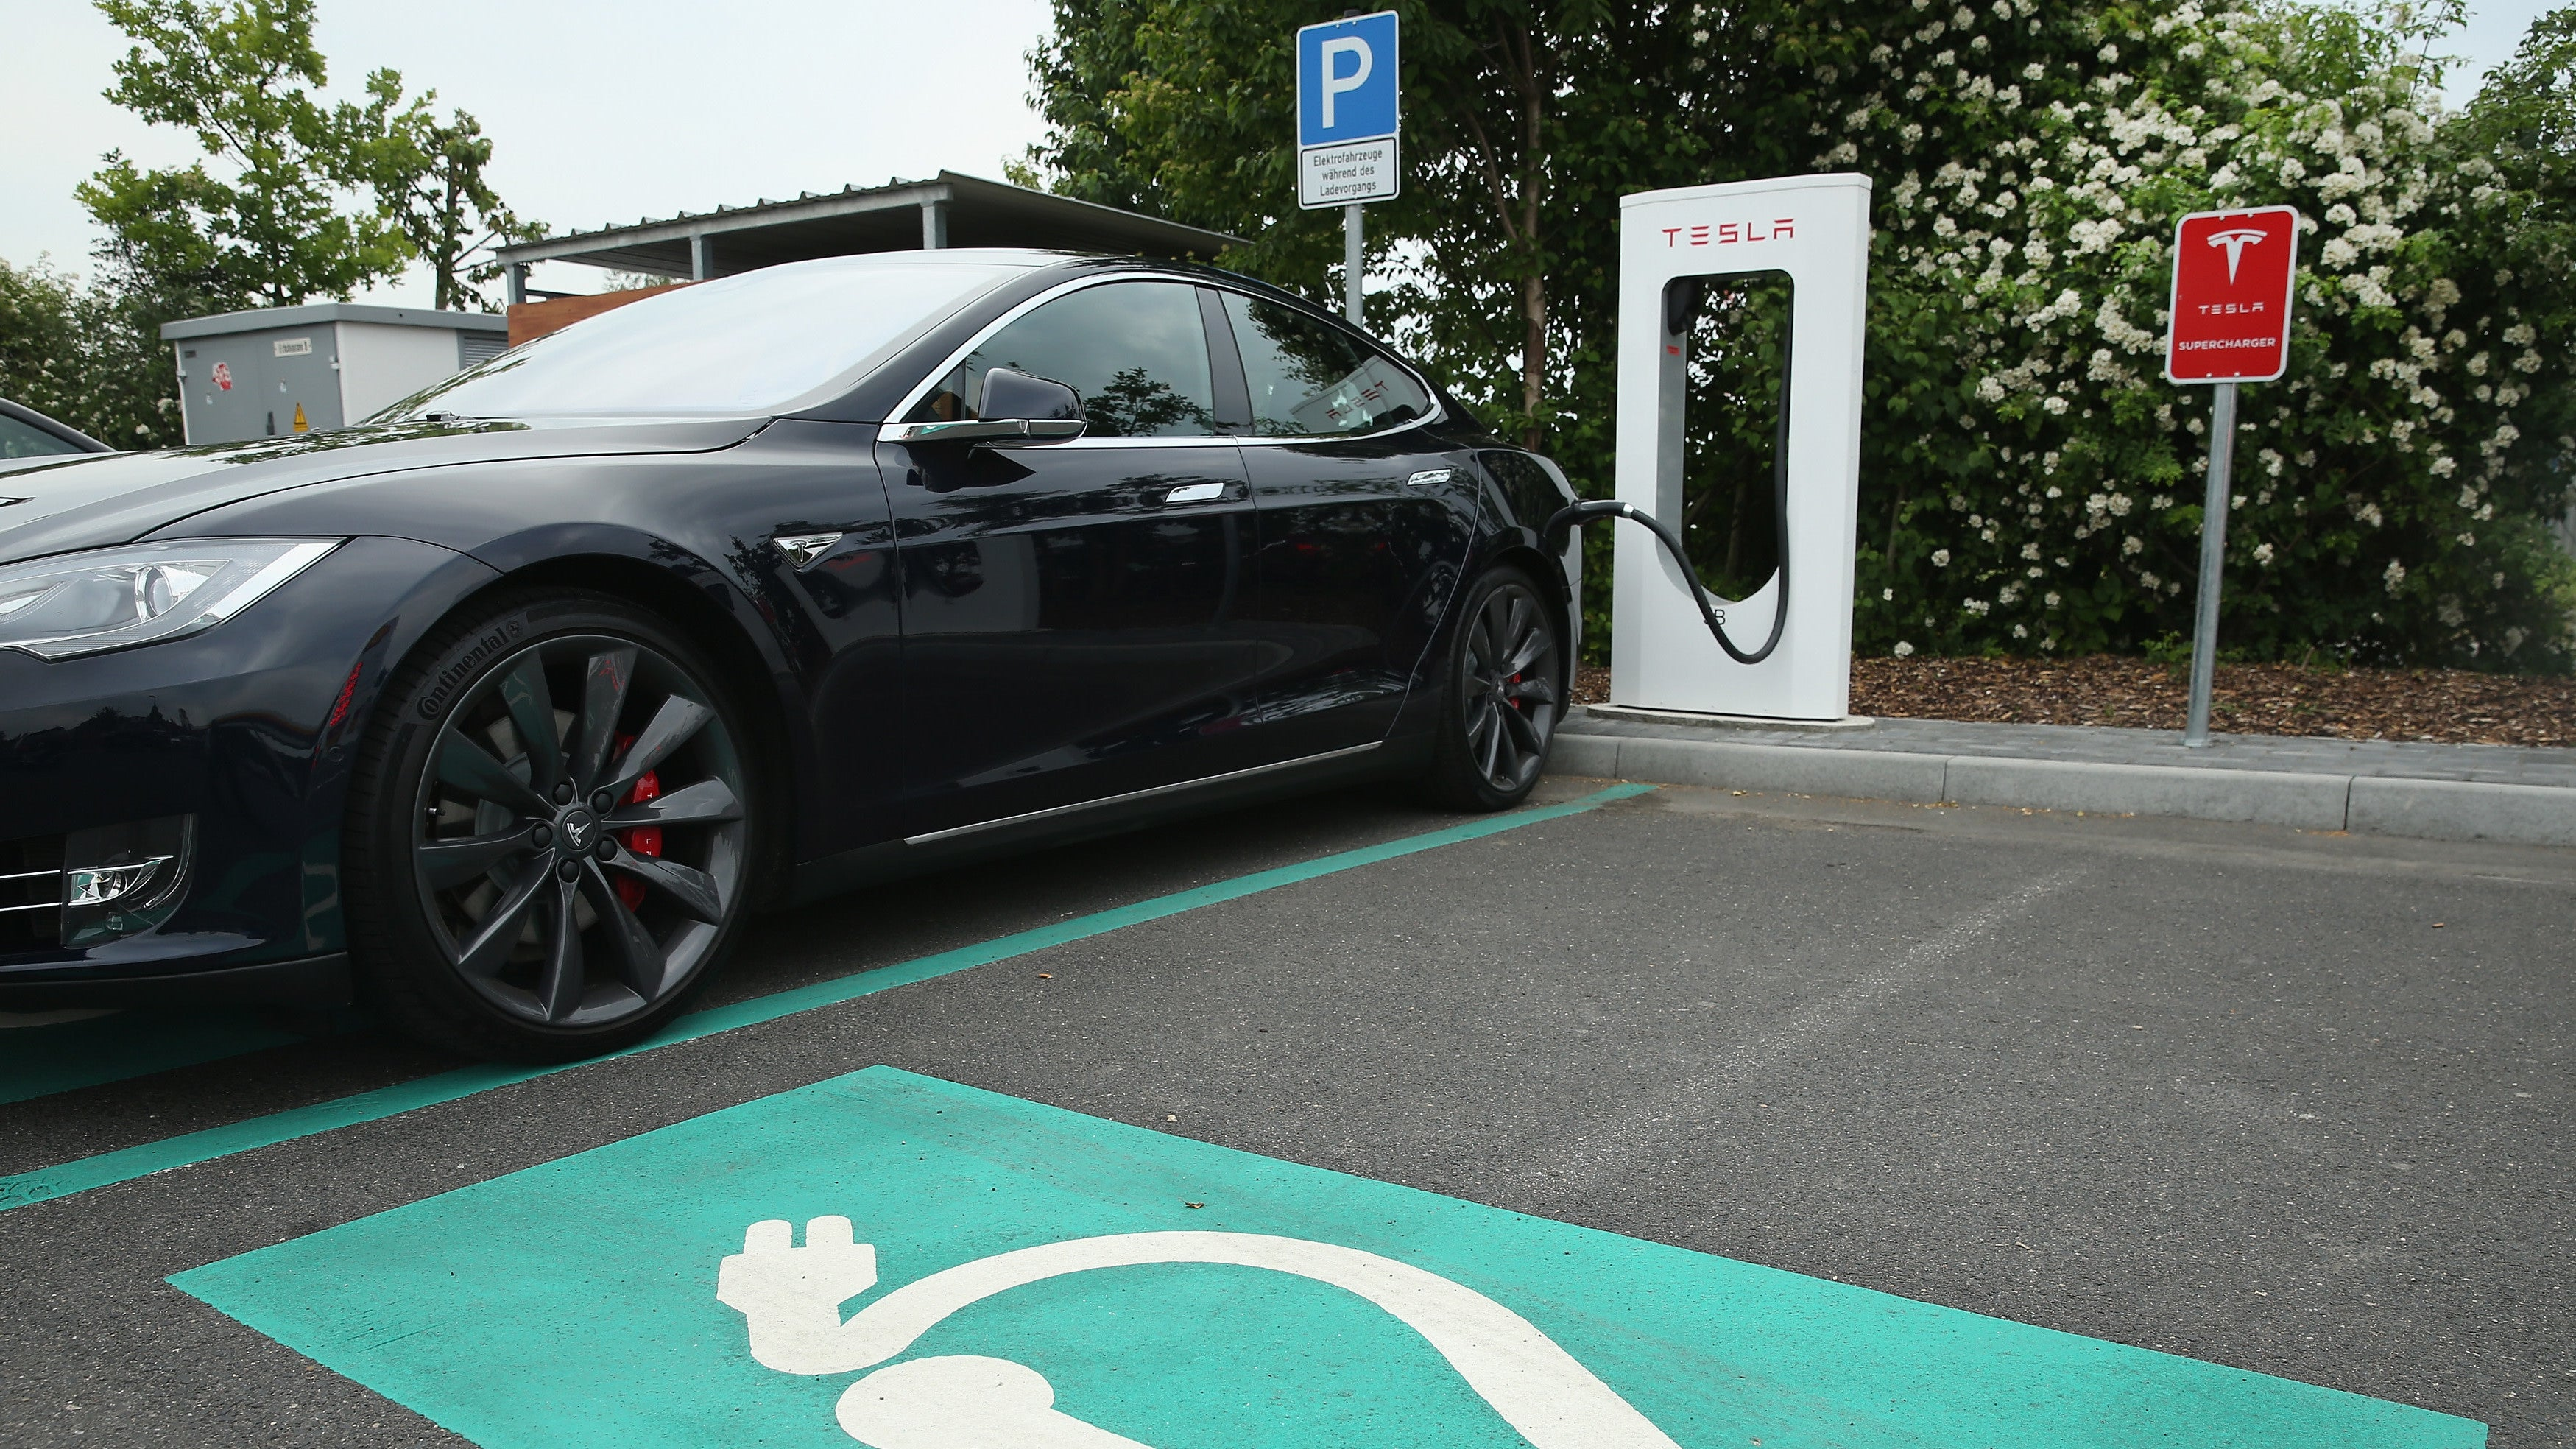 Reports Of Tesla Smart Summon Crashes Are Now Under Investigation